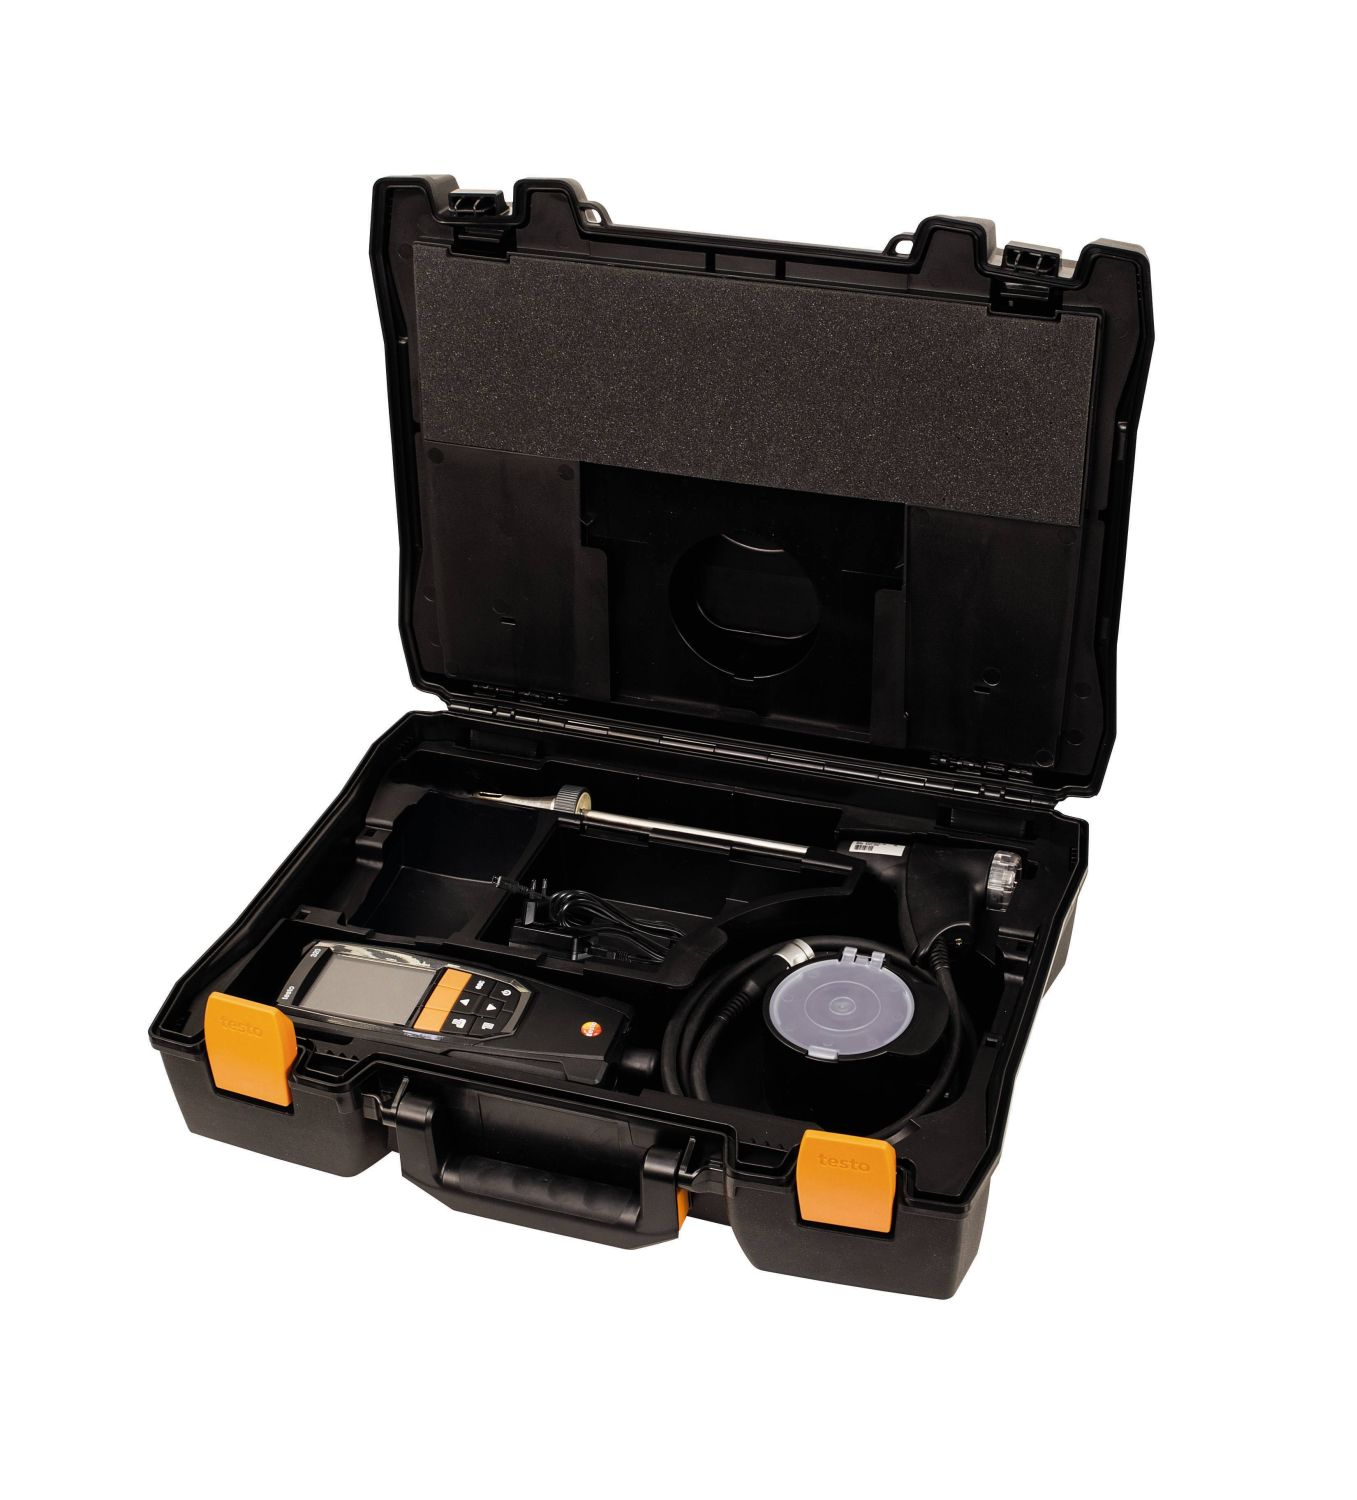 testo 320 set without printer